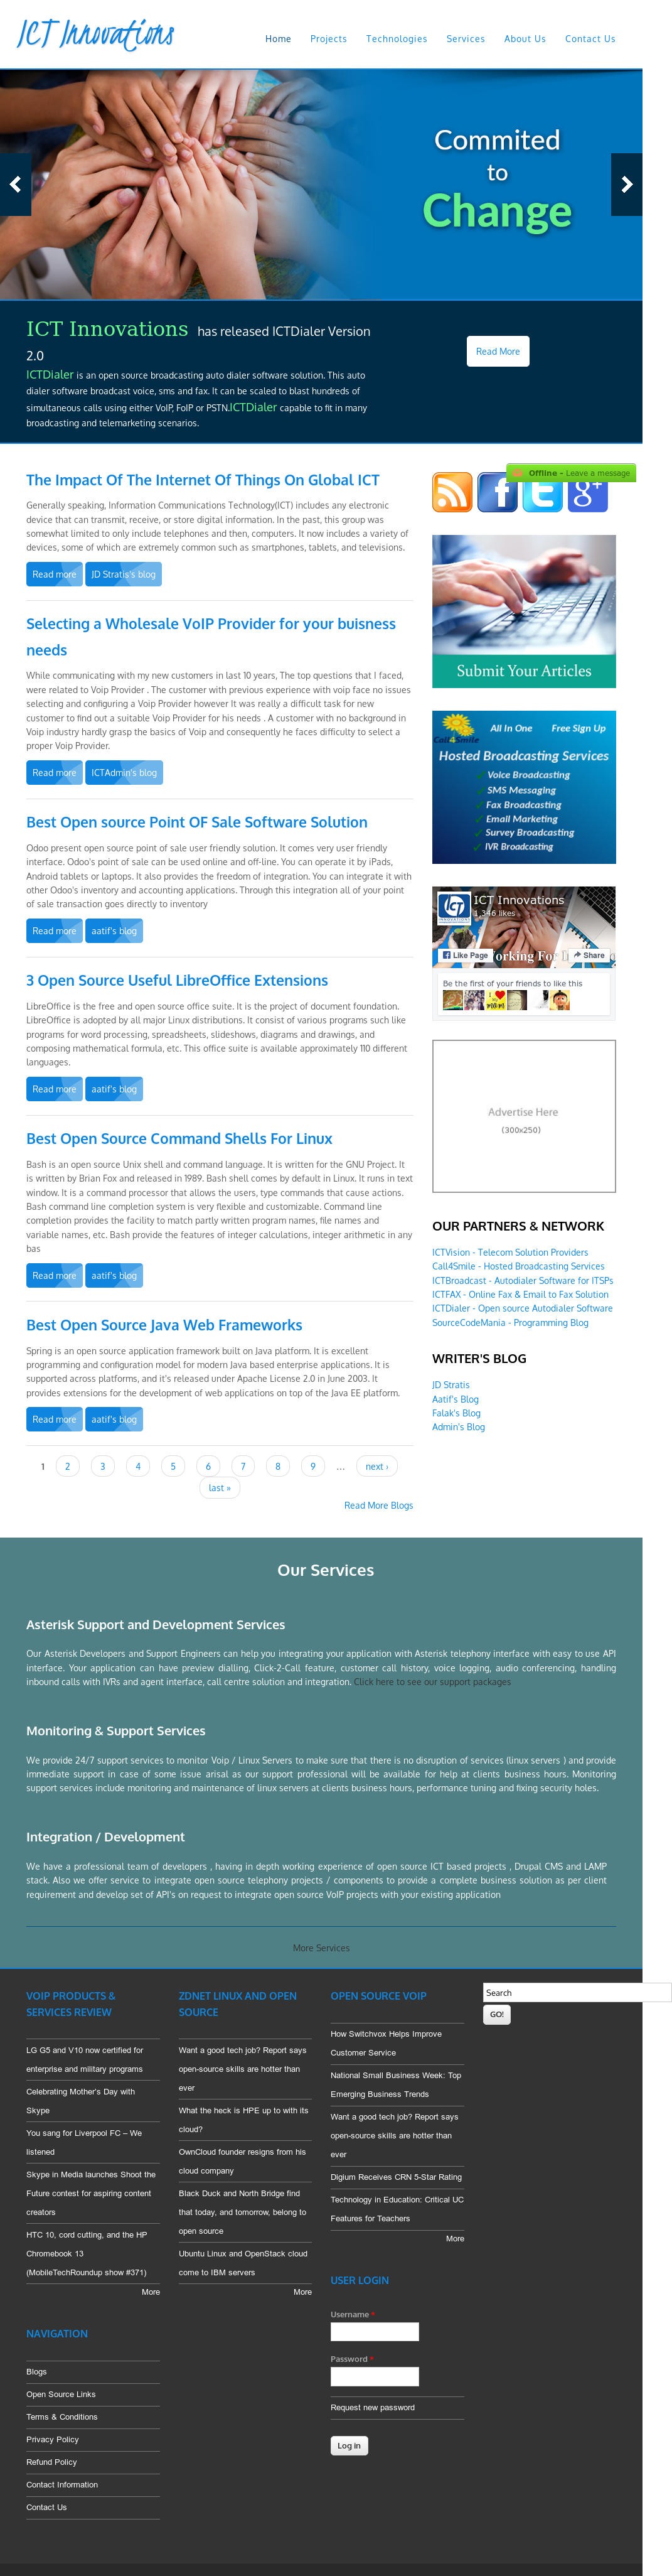 Owler Reports - ICT Innovations Blog Open Source Voip